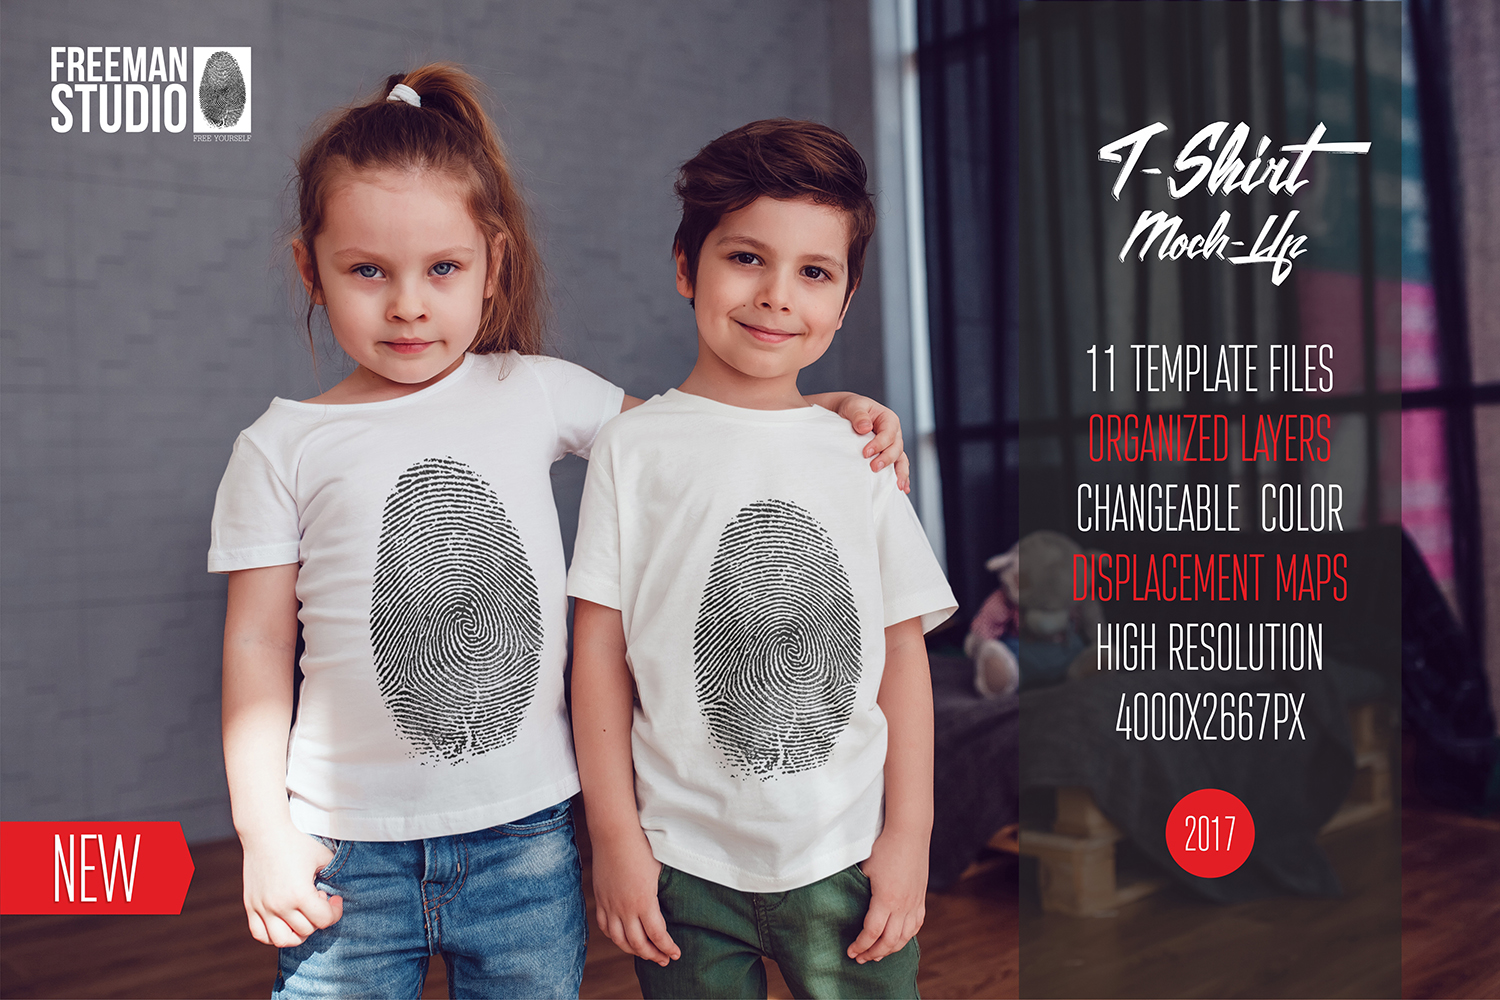 Kids T-Shirt Mock-Up Vol.3 2017 example image 1